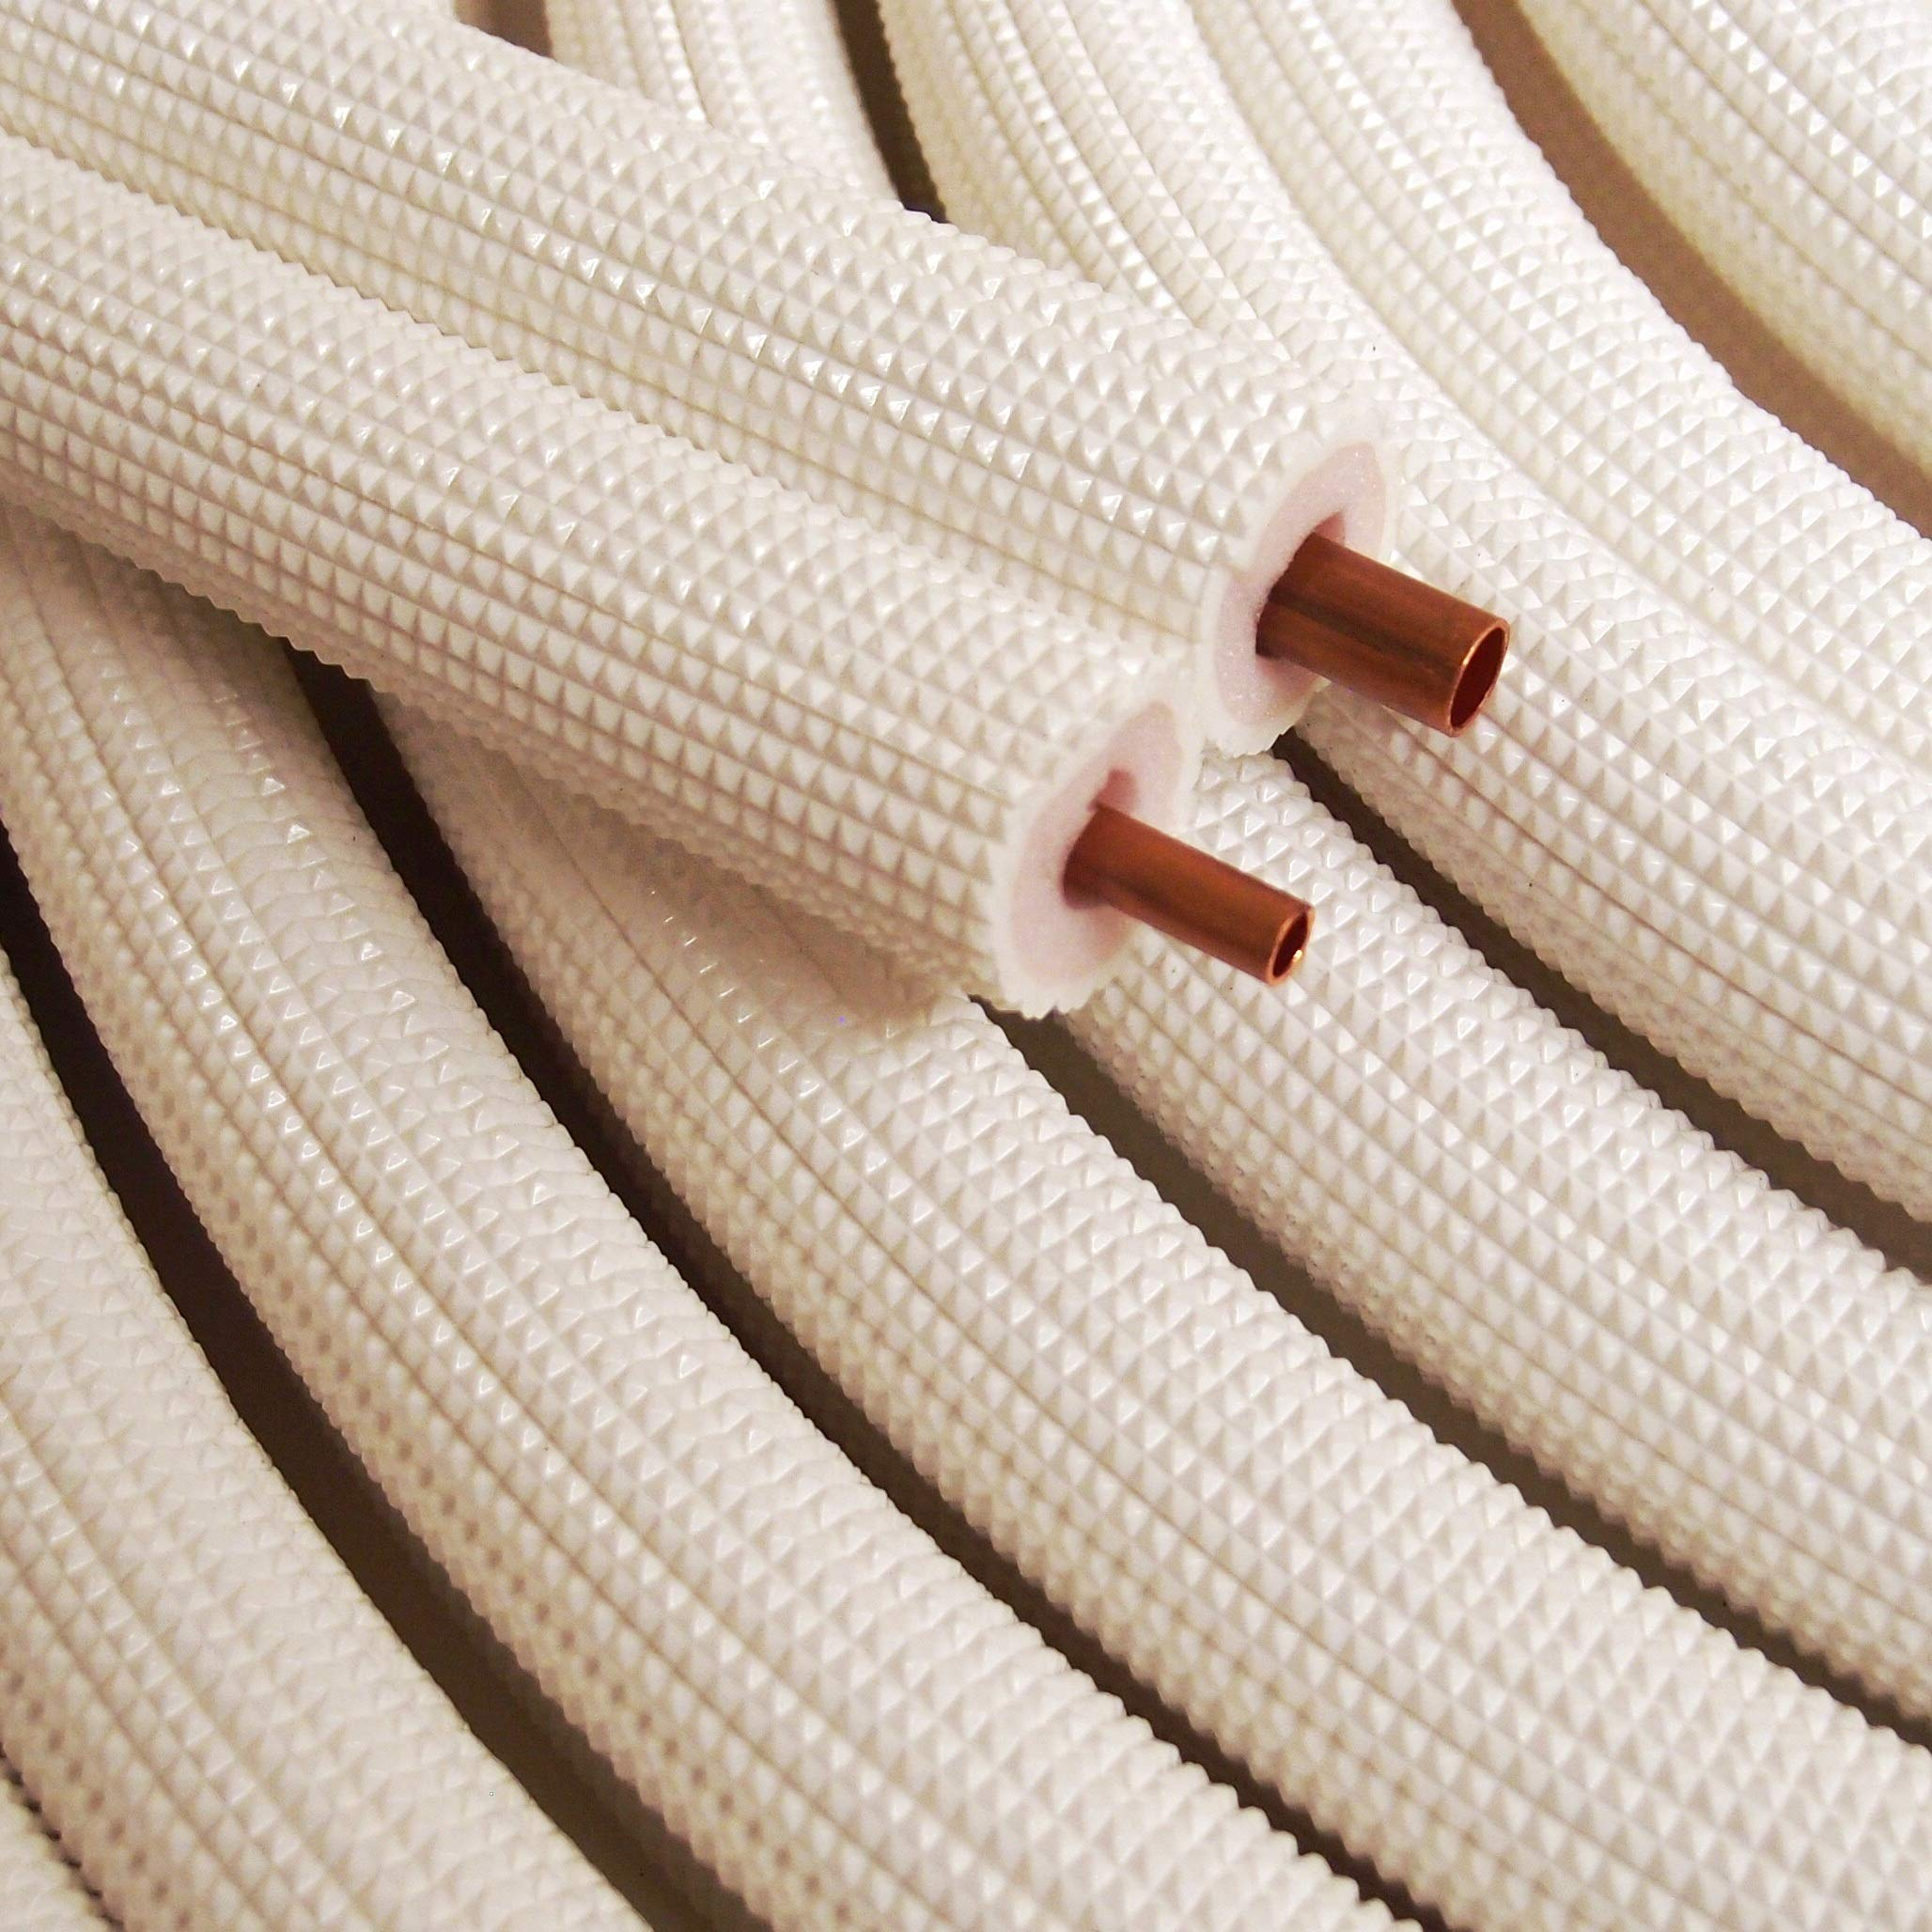 1/4'' - 3/8'' Insulated Copper Coil Line Set - Seamless Pipe Tube for HVAC, Refrigerant - 1/2'' White Insulation EZ Twin Set - 50' Long by HVAC Premium